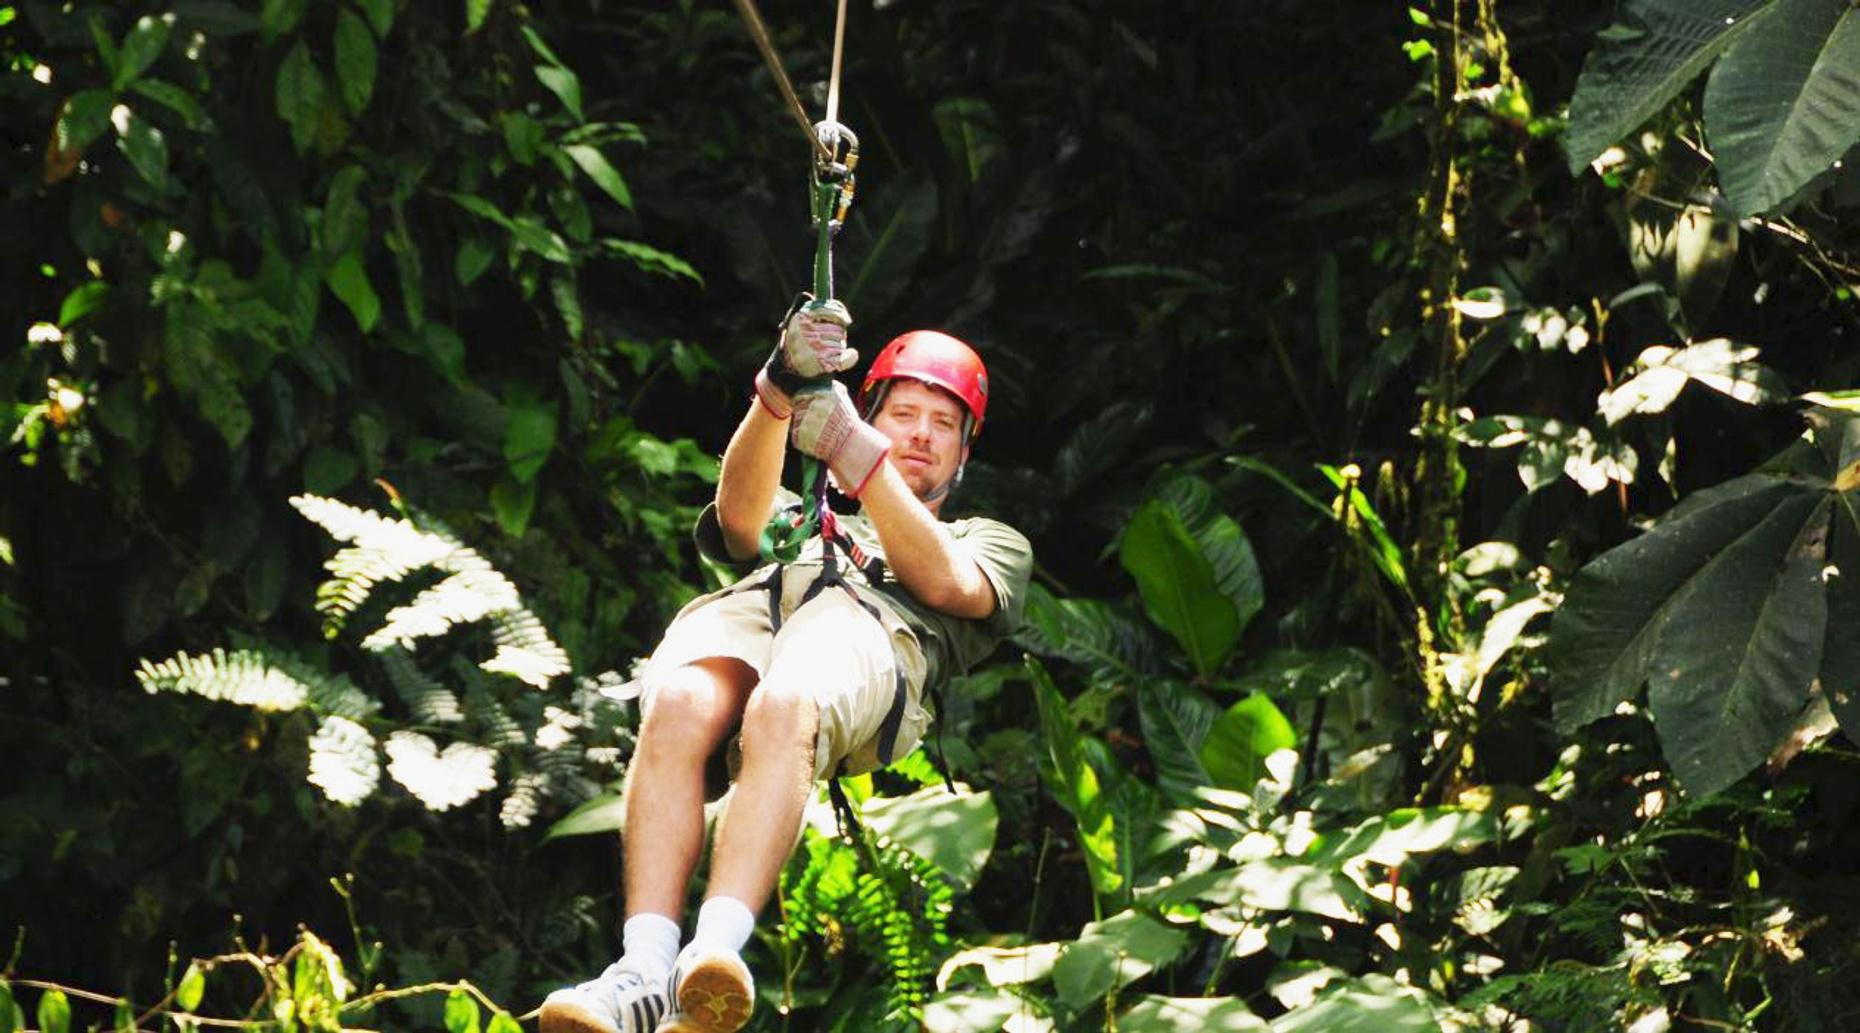 Jungle Adventure with Ziplining & More in Cancun